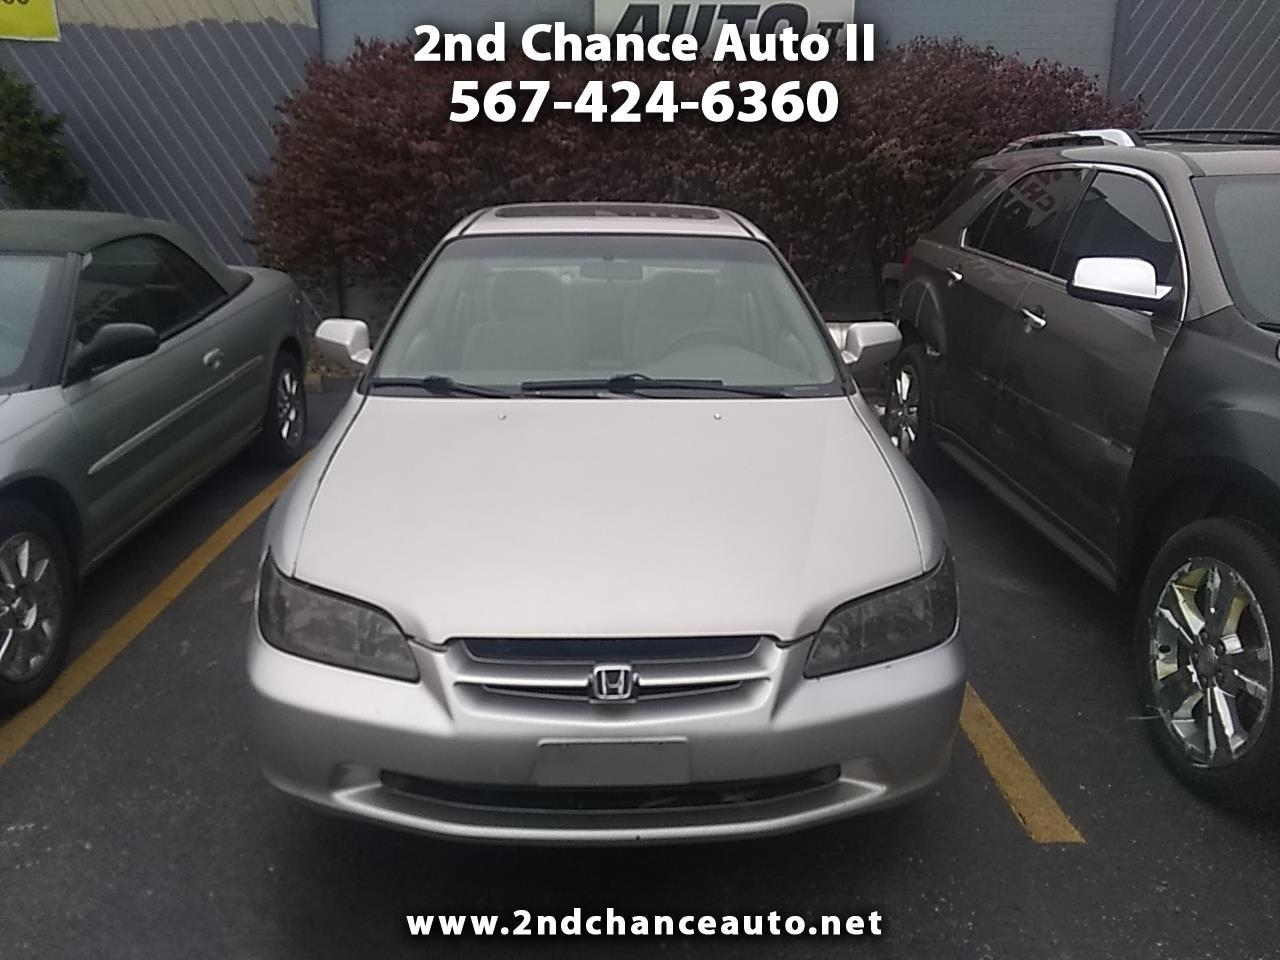 1999 Honda Accord $699